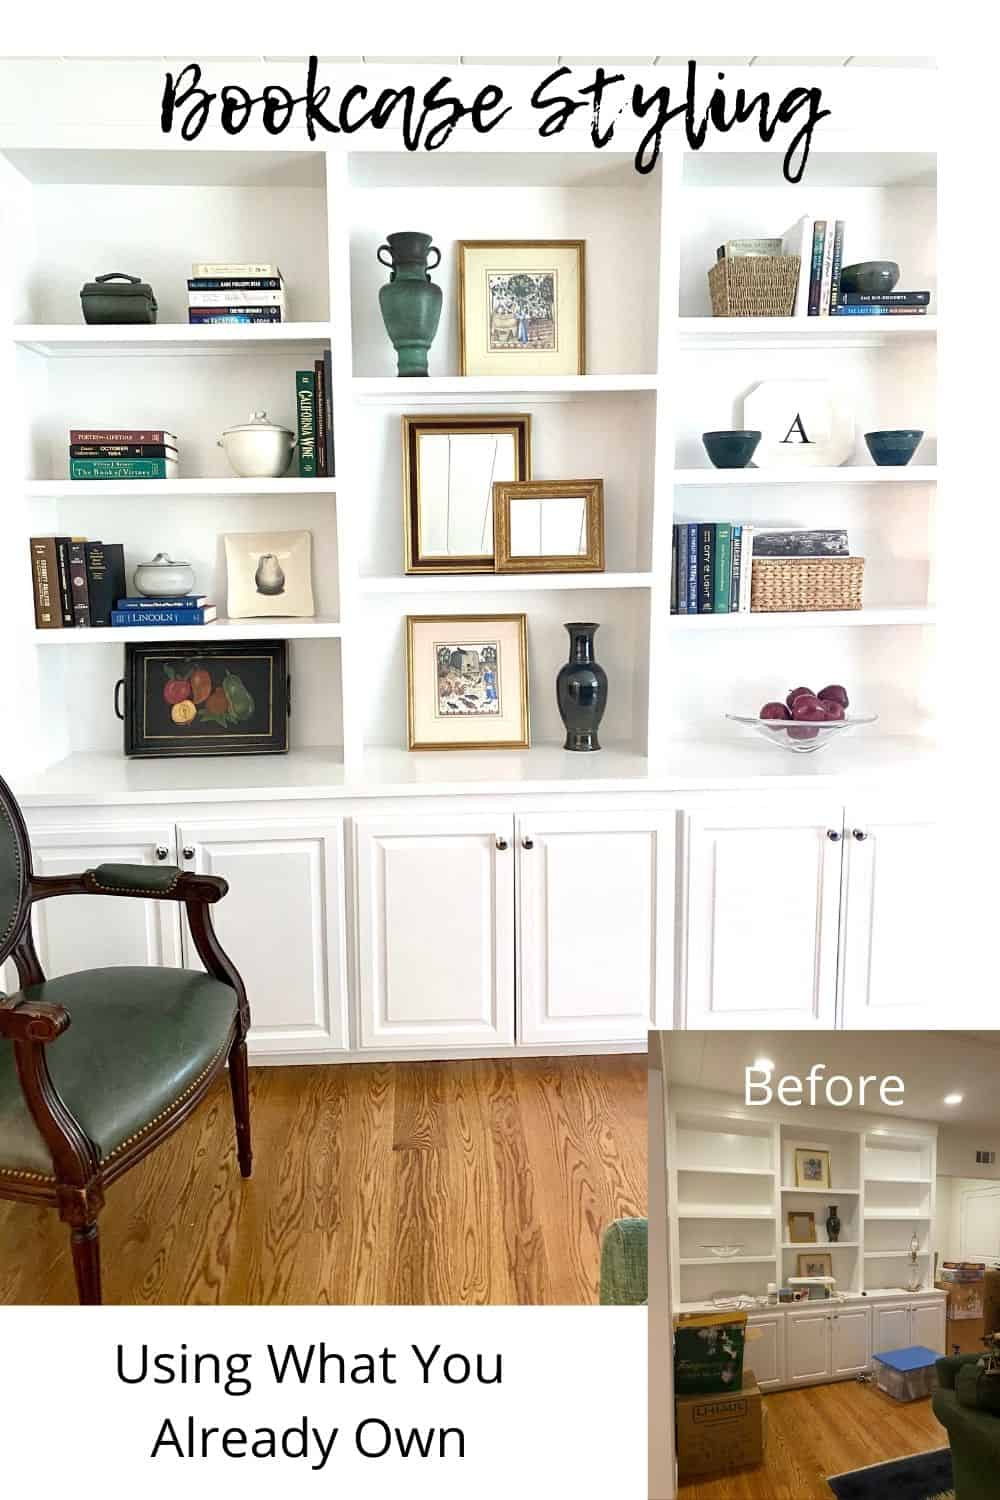 Mary Ann Pickett's Book case styling tips